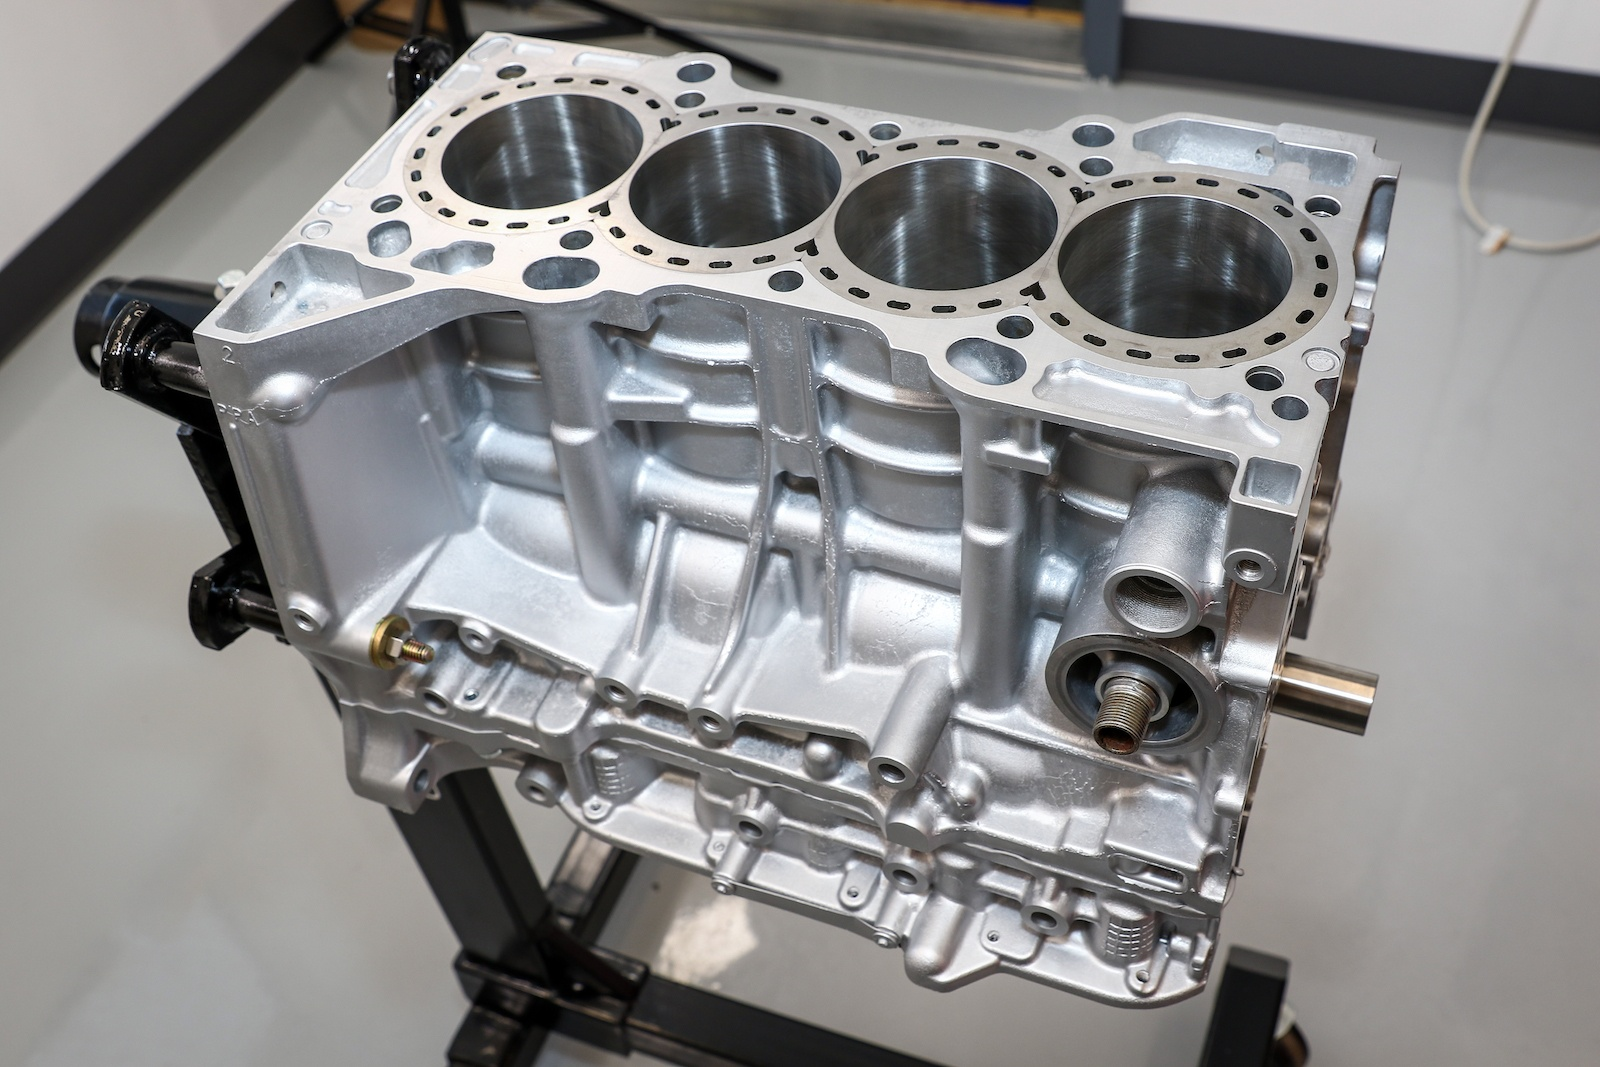 The 500 Horsepower Naturally Aspirated K24 Engine by 4Piston